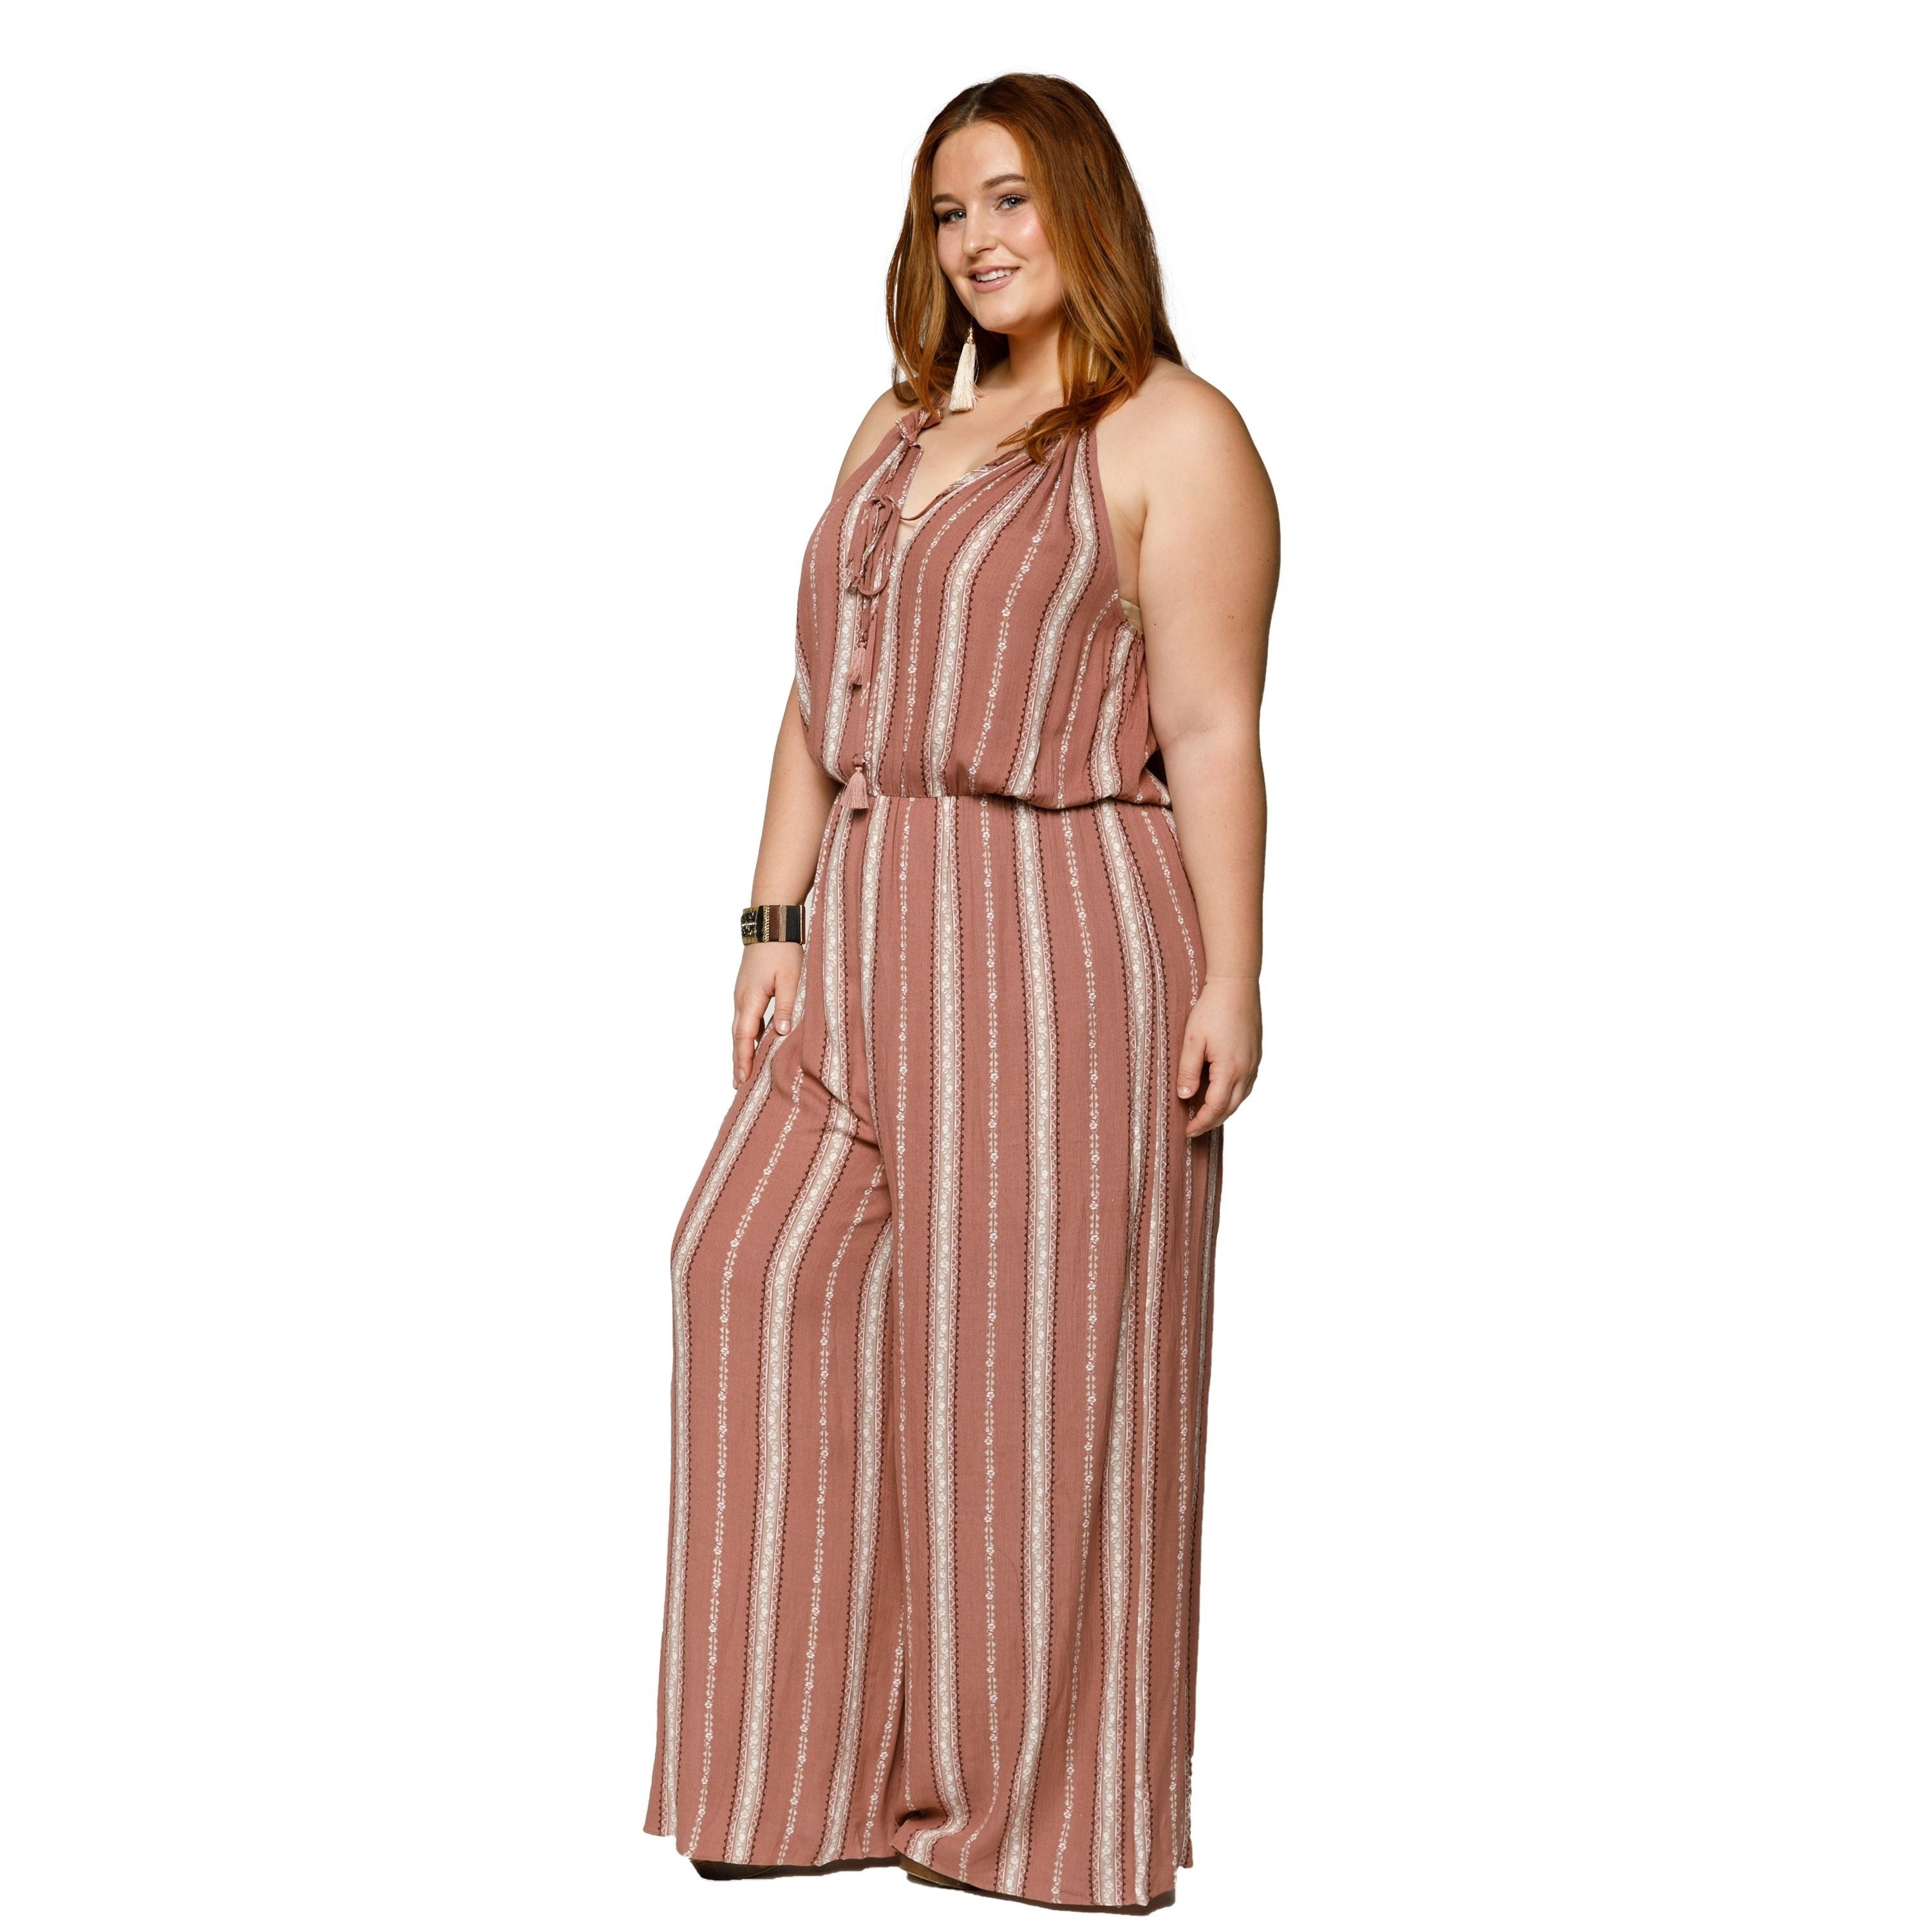 0eff8e5cfbe5 Shop Xehar Womens Plus Size Sexy Sleeveless Halter Tassel Tie Jumpsuit -  Free Shipping On Orders Over  45 - Overstock - 20851024